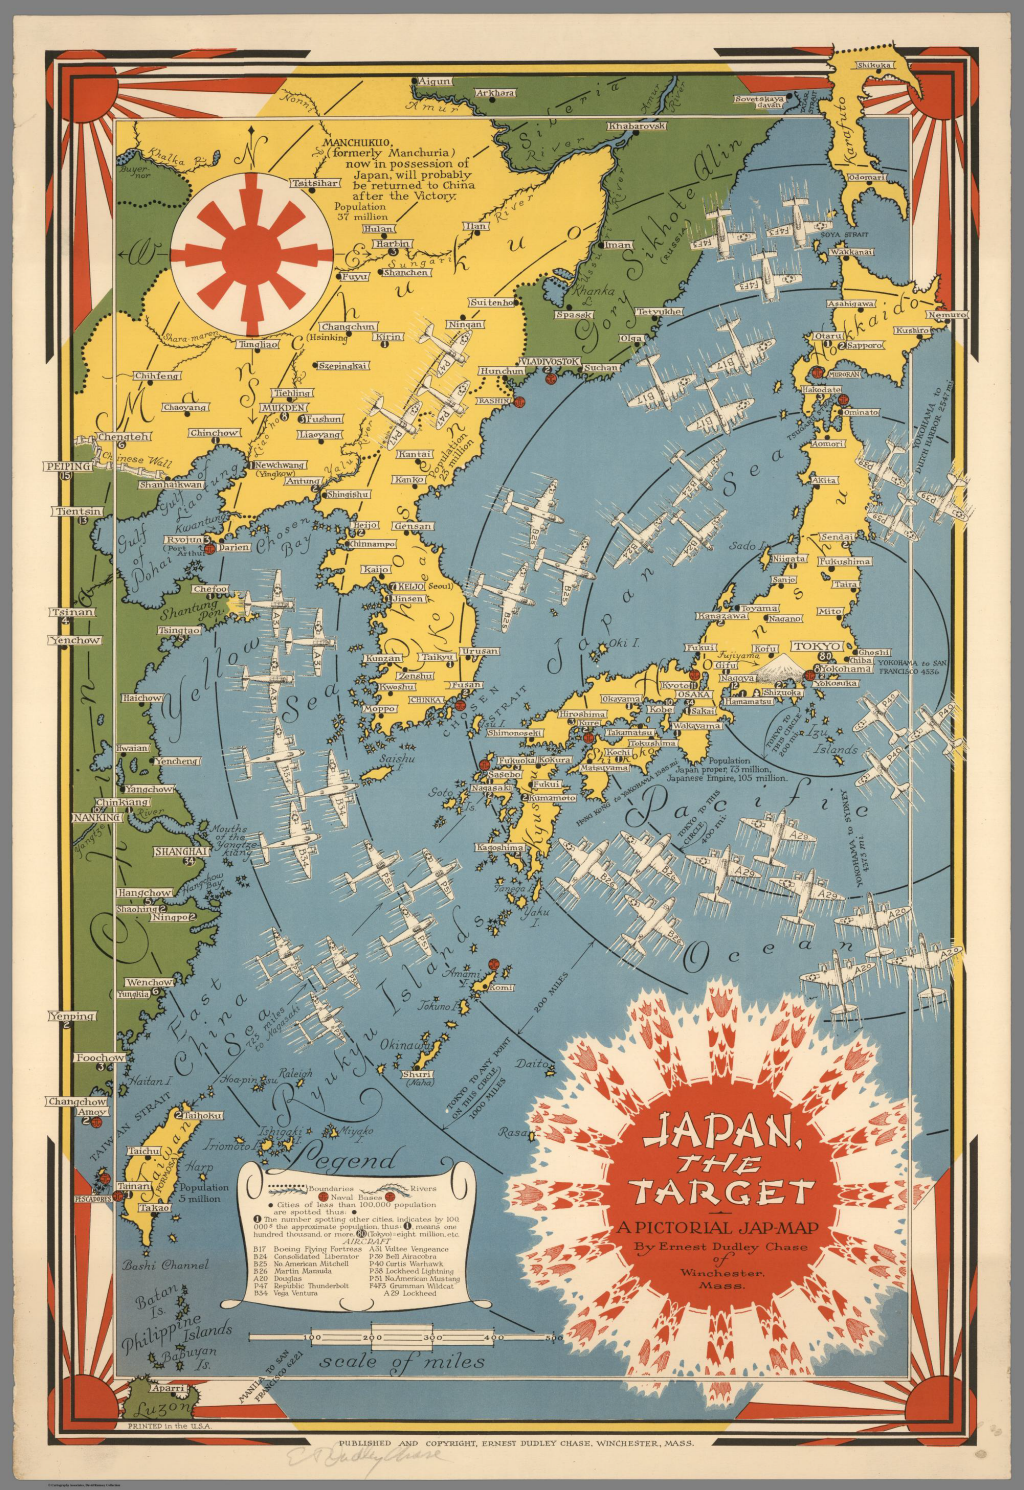 MapCarte 271365 Japan the target a pictorial Japmap by Ernest